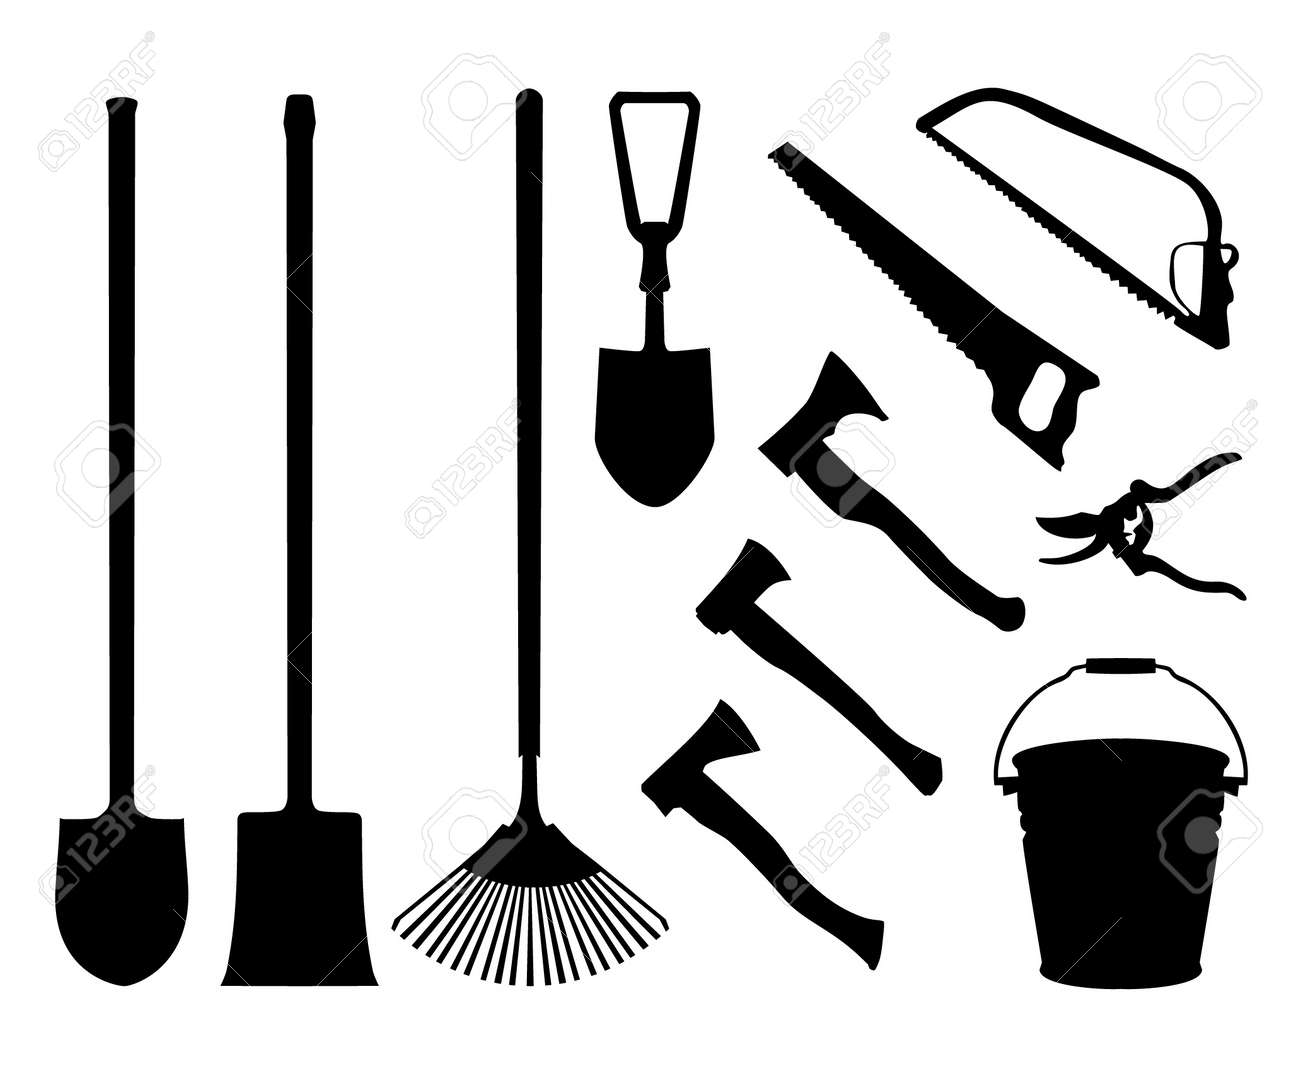 Set of implements. Contour collection of instruments. Black isolated silhouettes of garden tools. Shovel, spade, axe, saw, handsaw, bucket, pail, rake garden shears Stock Vector - 16236397